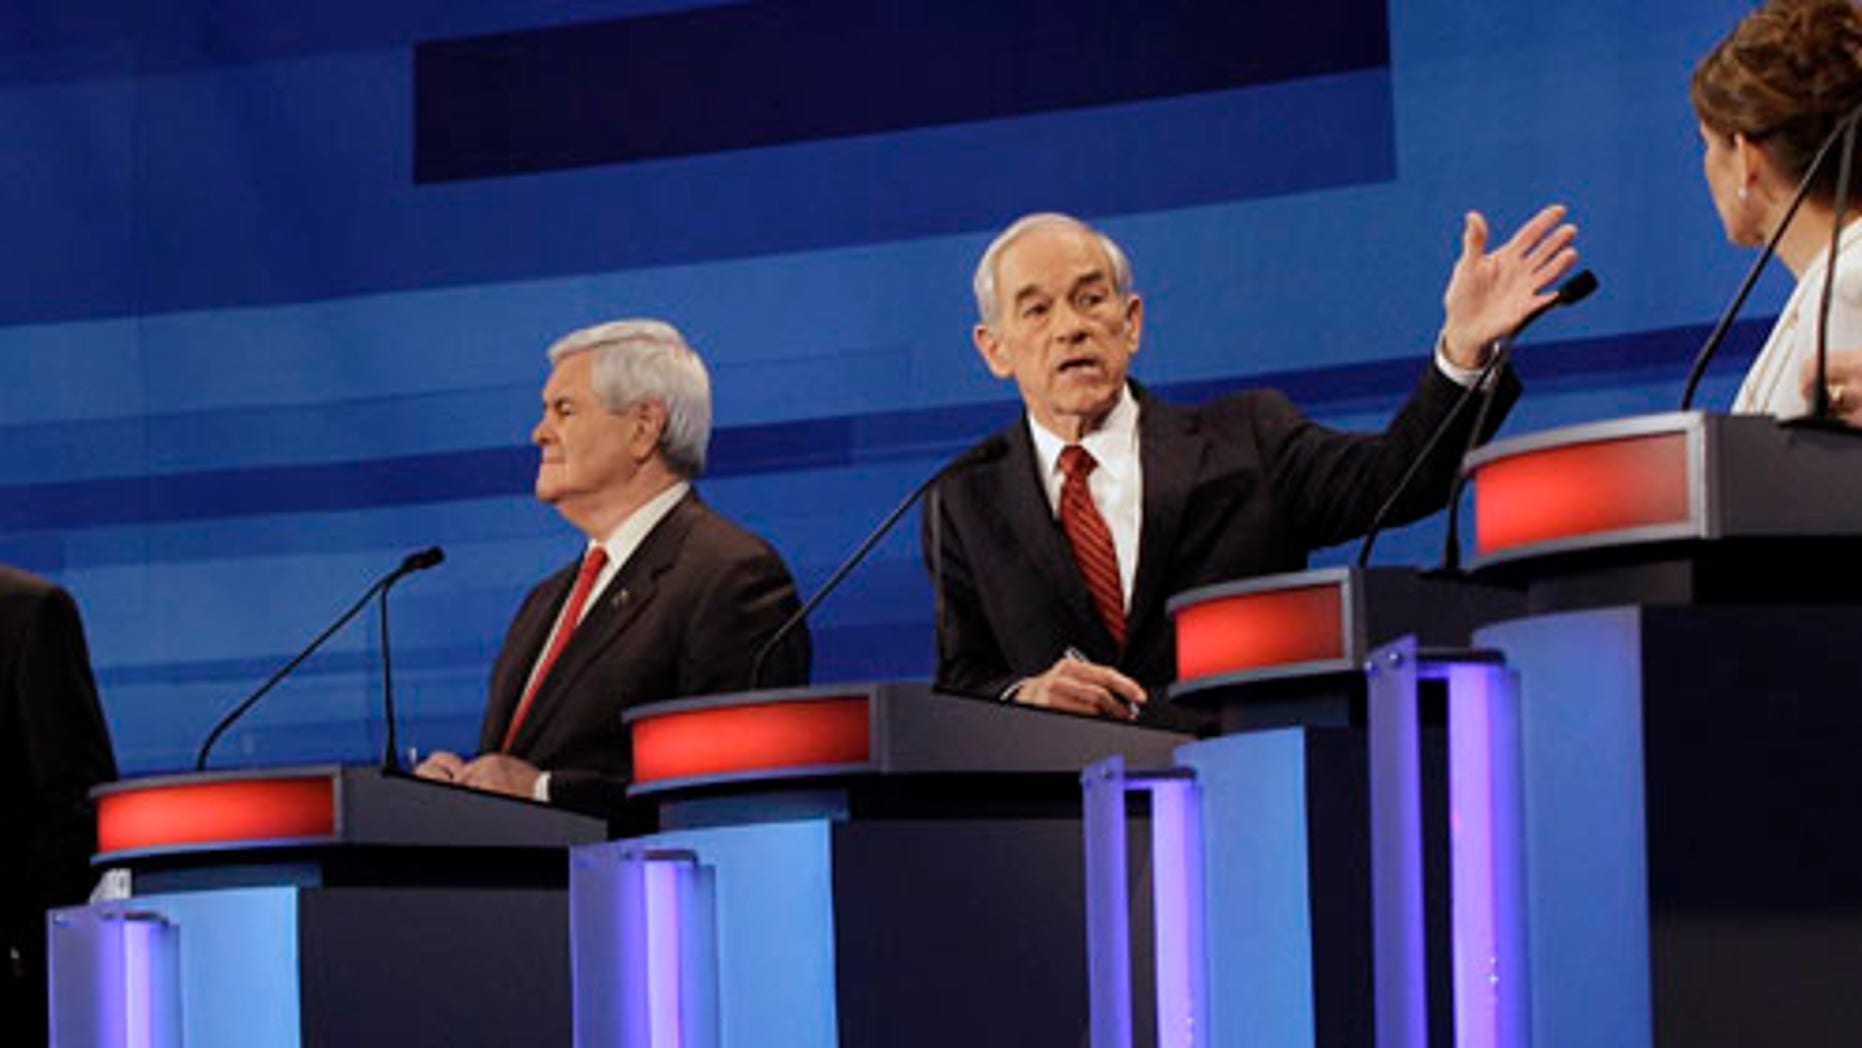 Republican presidential candidates from left, former Massachusetts Gov. Mitt Romney, former House Speaker Newt Gingrich, Rep. Ron Paul, R-Texas, and Rep. Michele Bachmann, R-Minn.,  participate in a Republican presidential debate in Sioux City, Iowa, Thursday, Dec. 15, 2011. (AP Photo/Eric Gay, Pool)